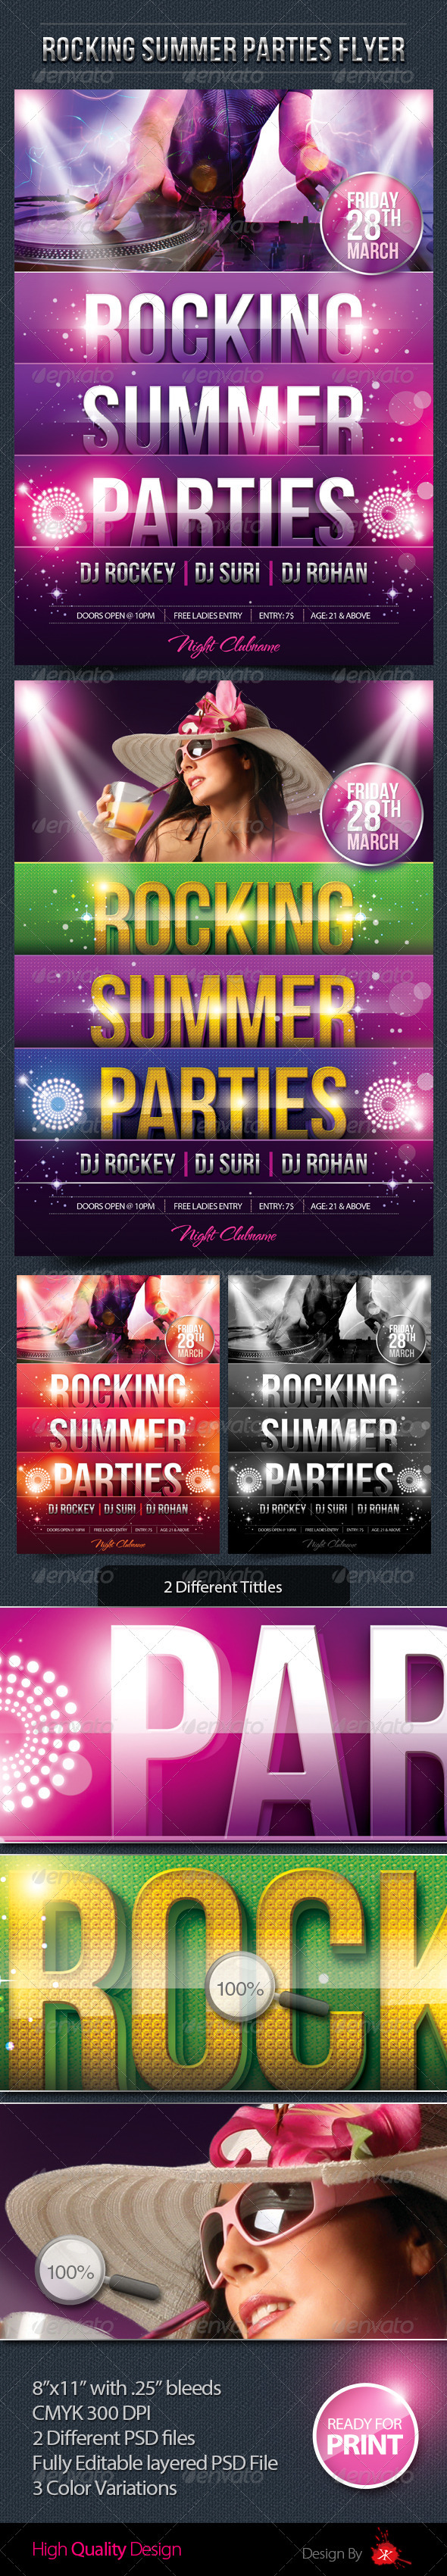 Rocking Summer Party Flyer - Clubs & Parties Events